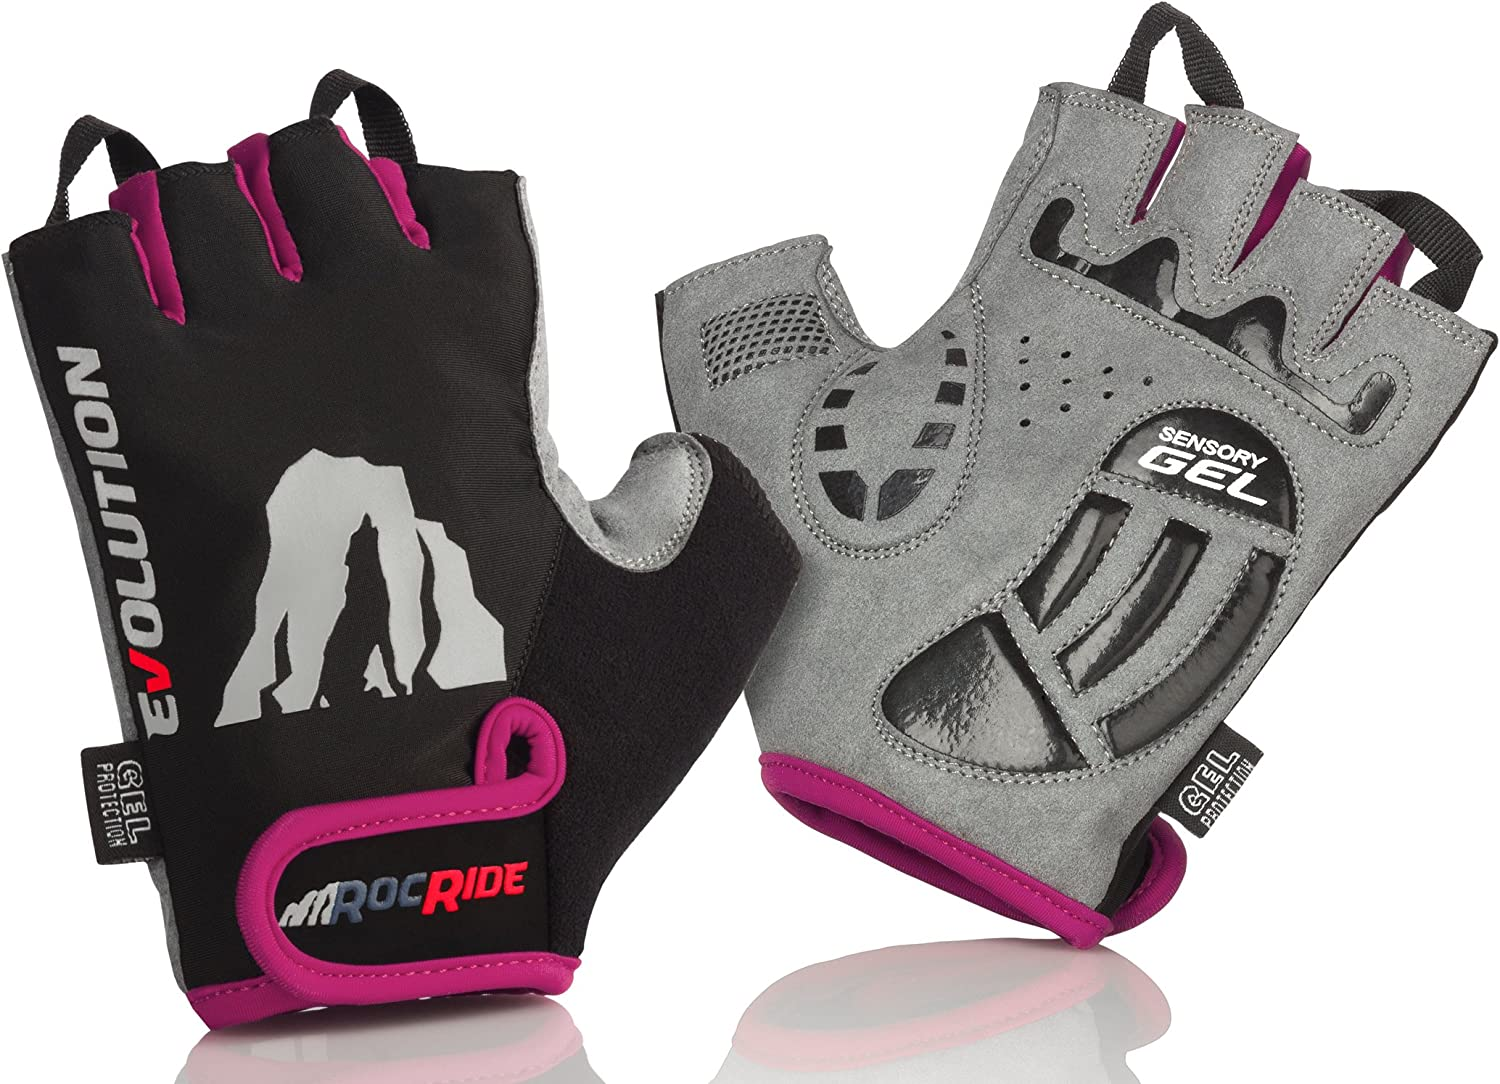 RocRide Cycling Gloves with Gel Padded Protection Road and Mountain Biking Half Finger with Pull Tabs Men Women and Children Sizes.